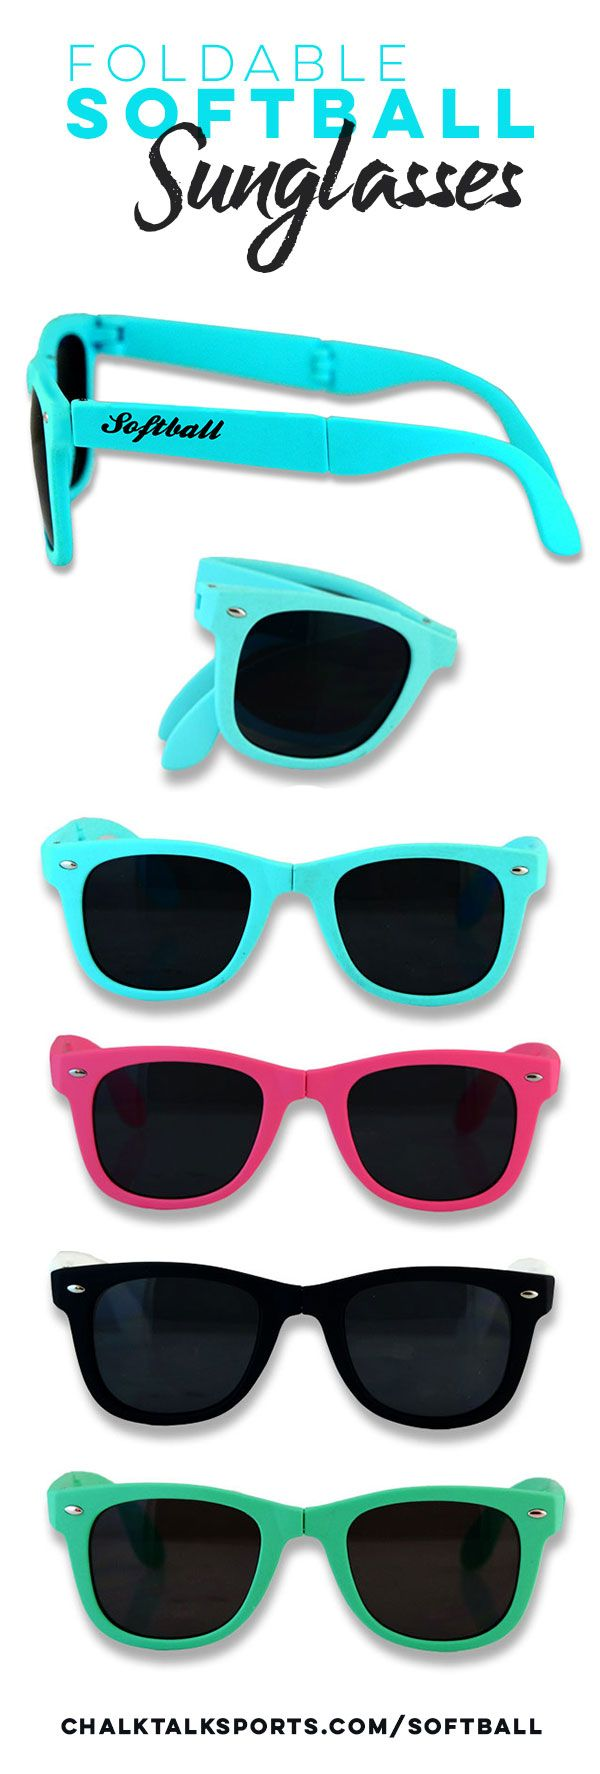 Check out these awesome foldable Softball Sunglasses!